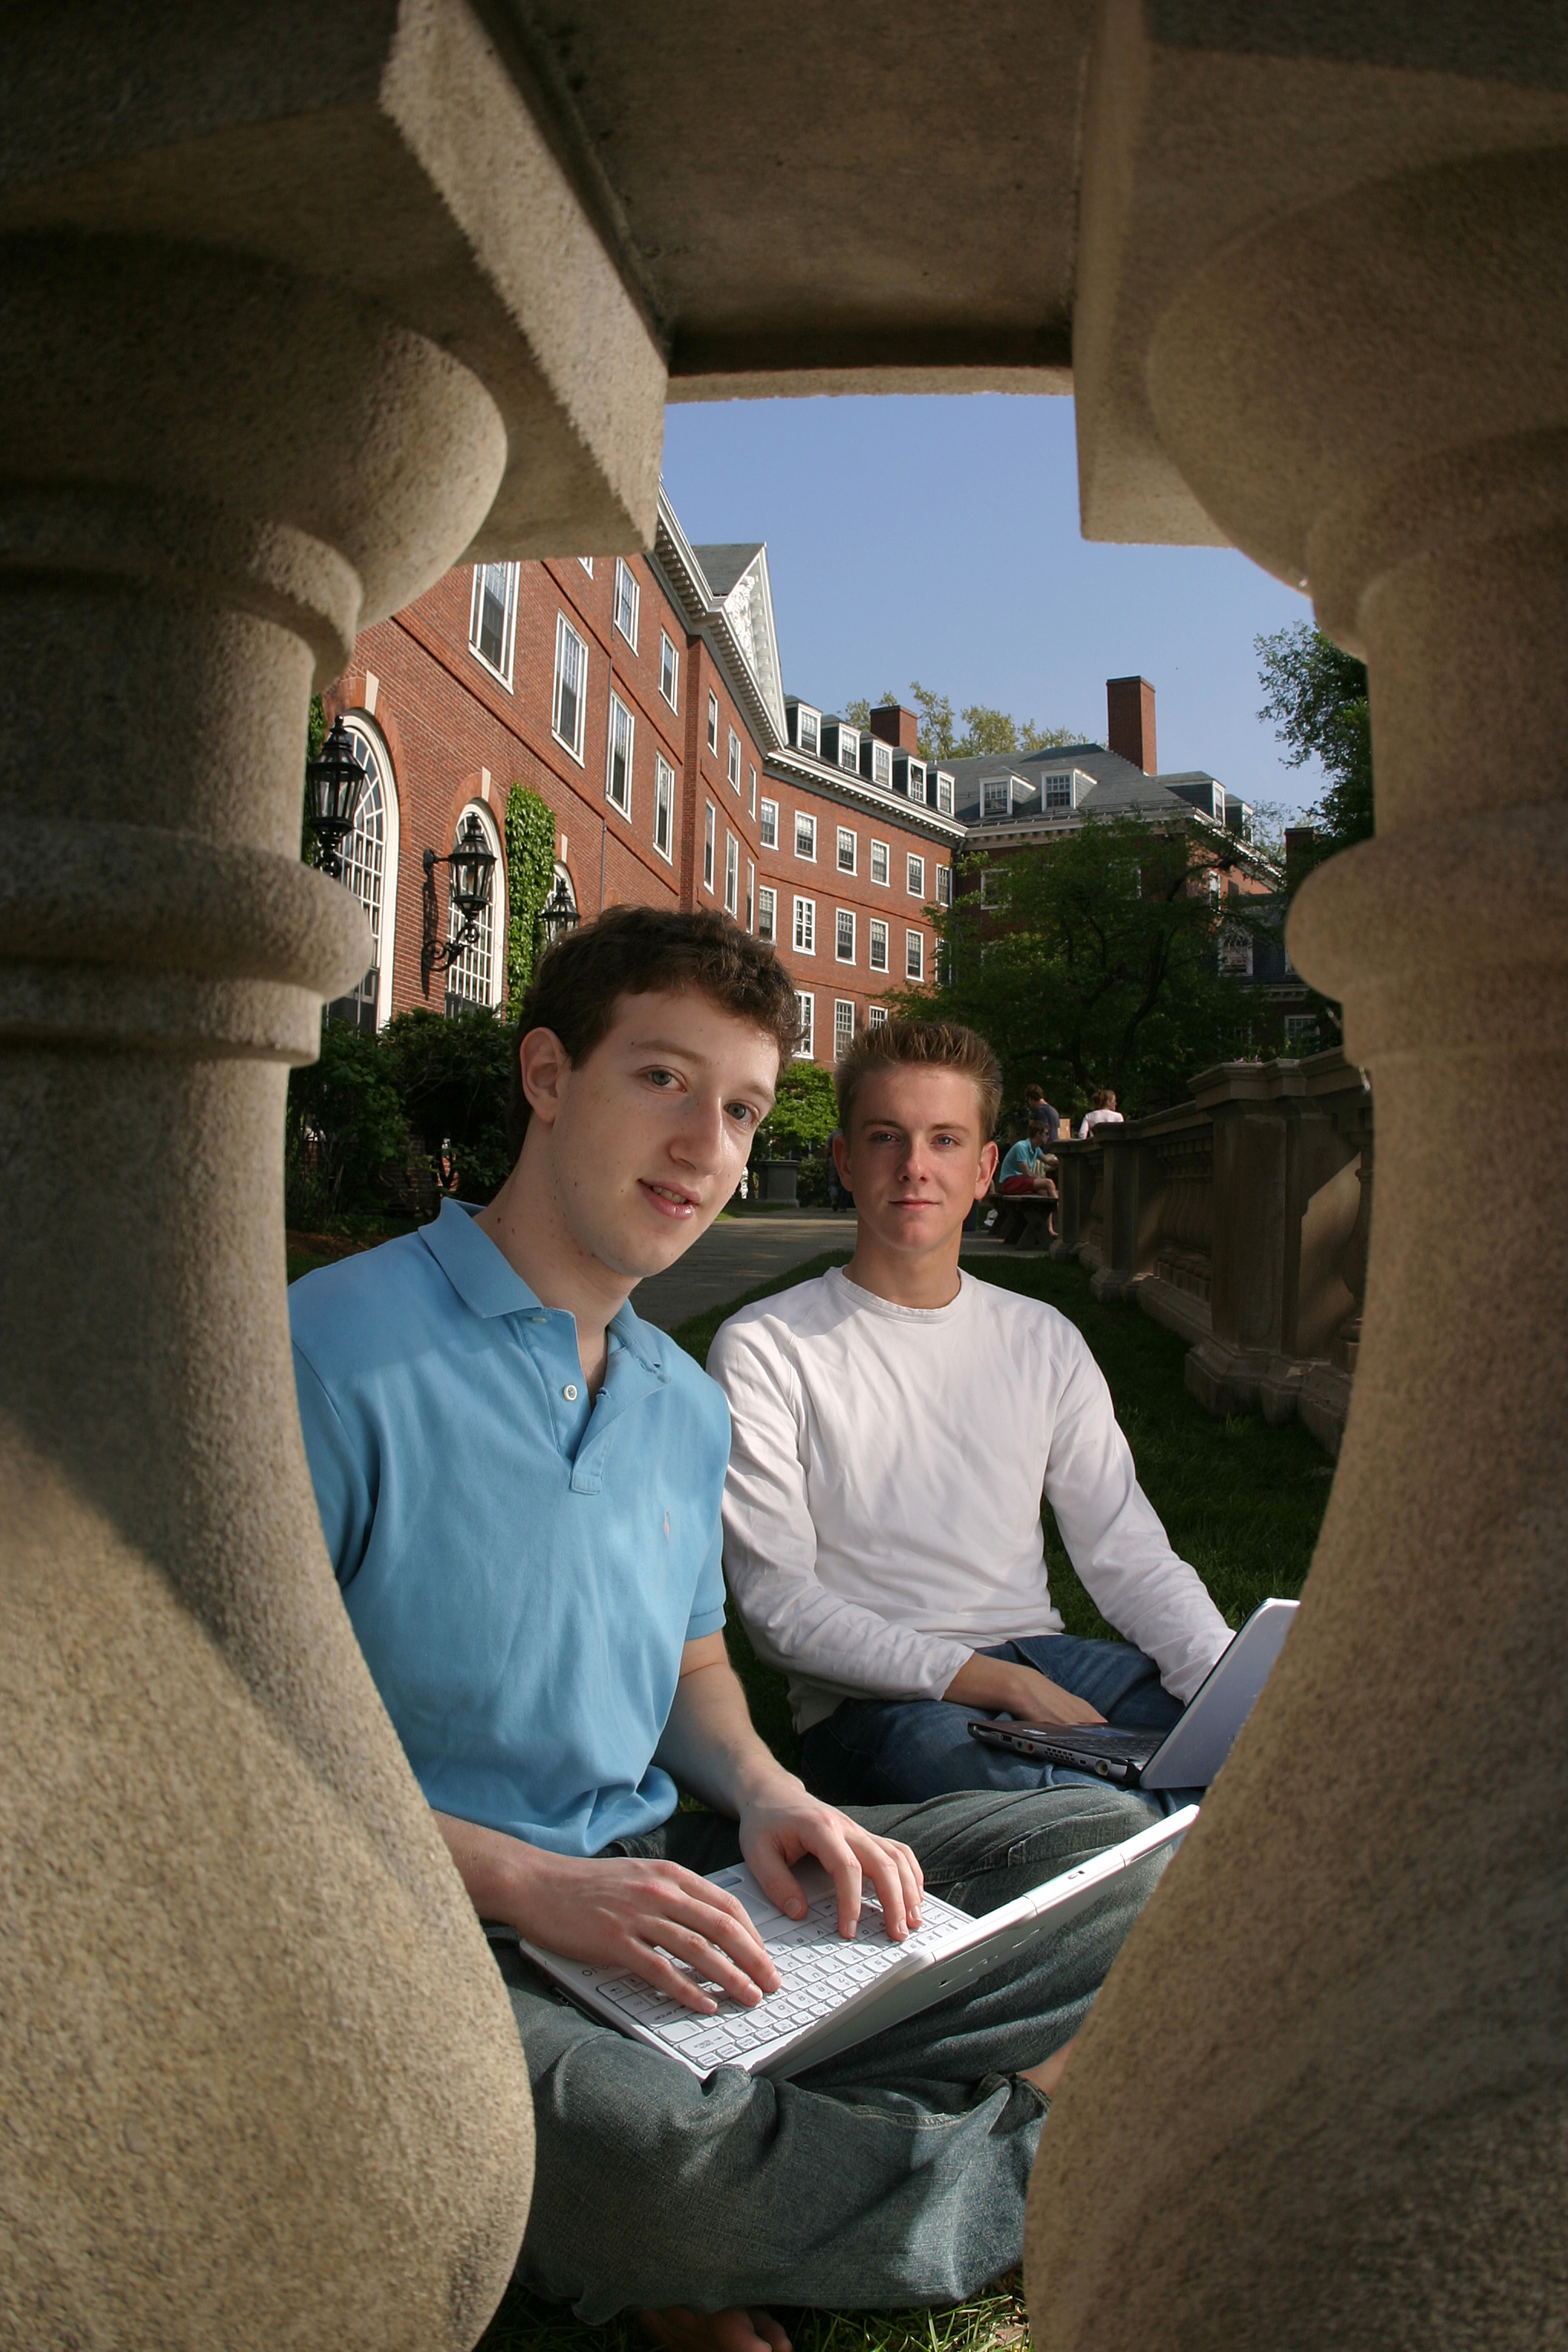 Mark Zuckerberg and Chris Hughes in 2004.